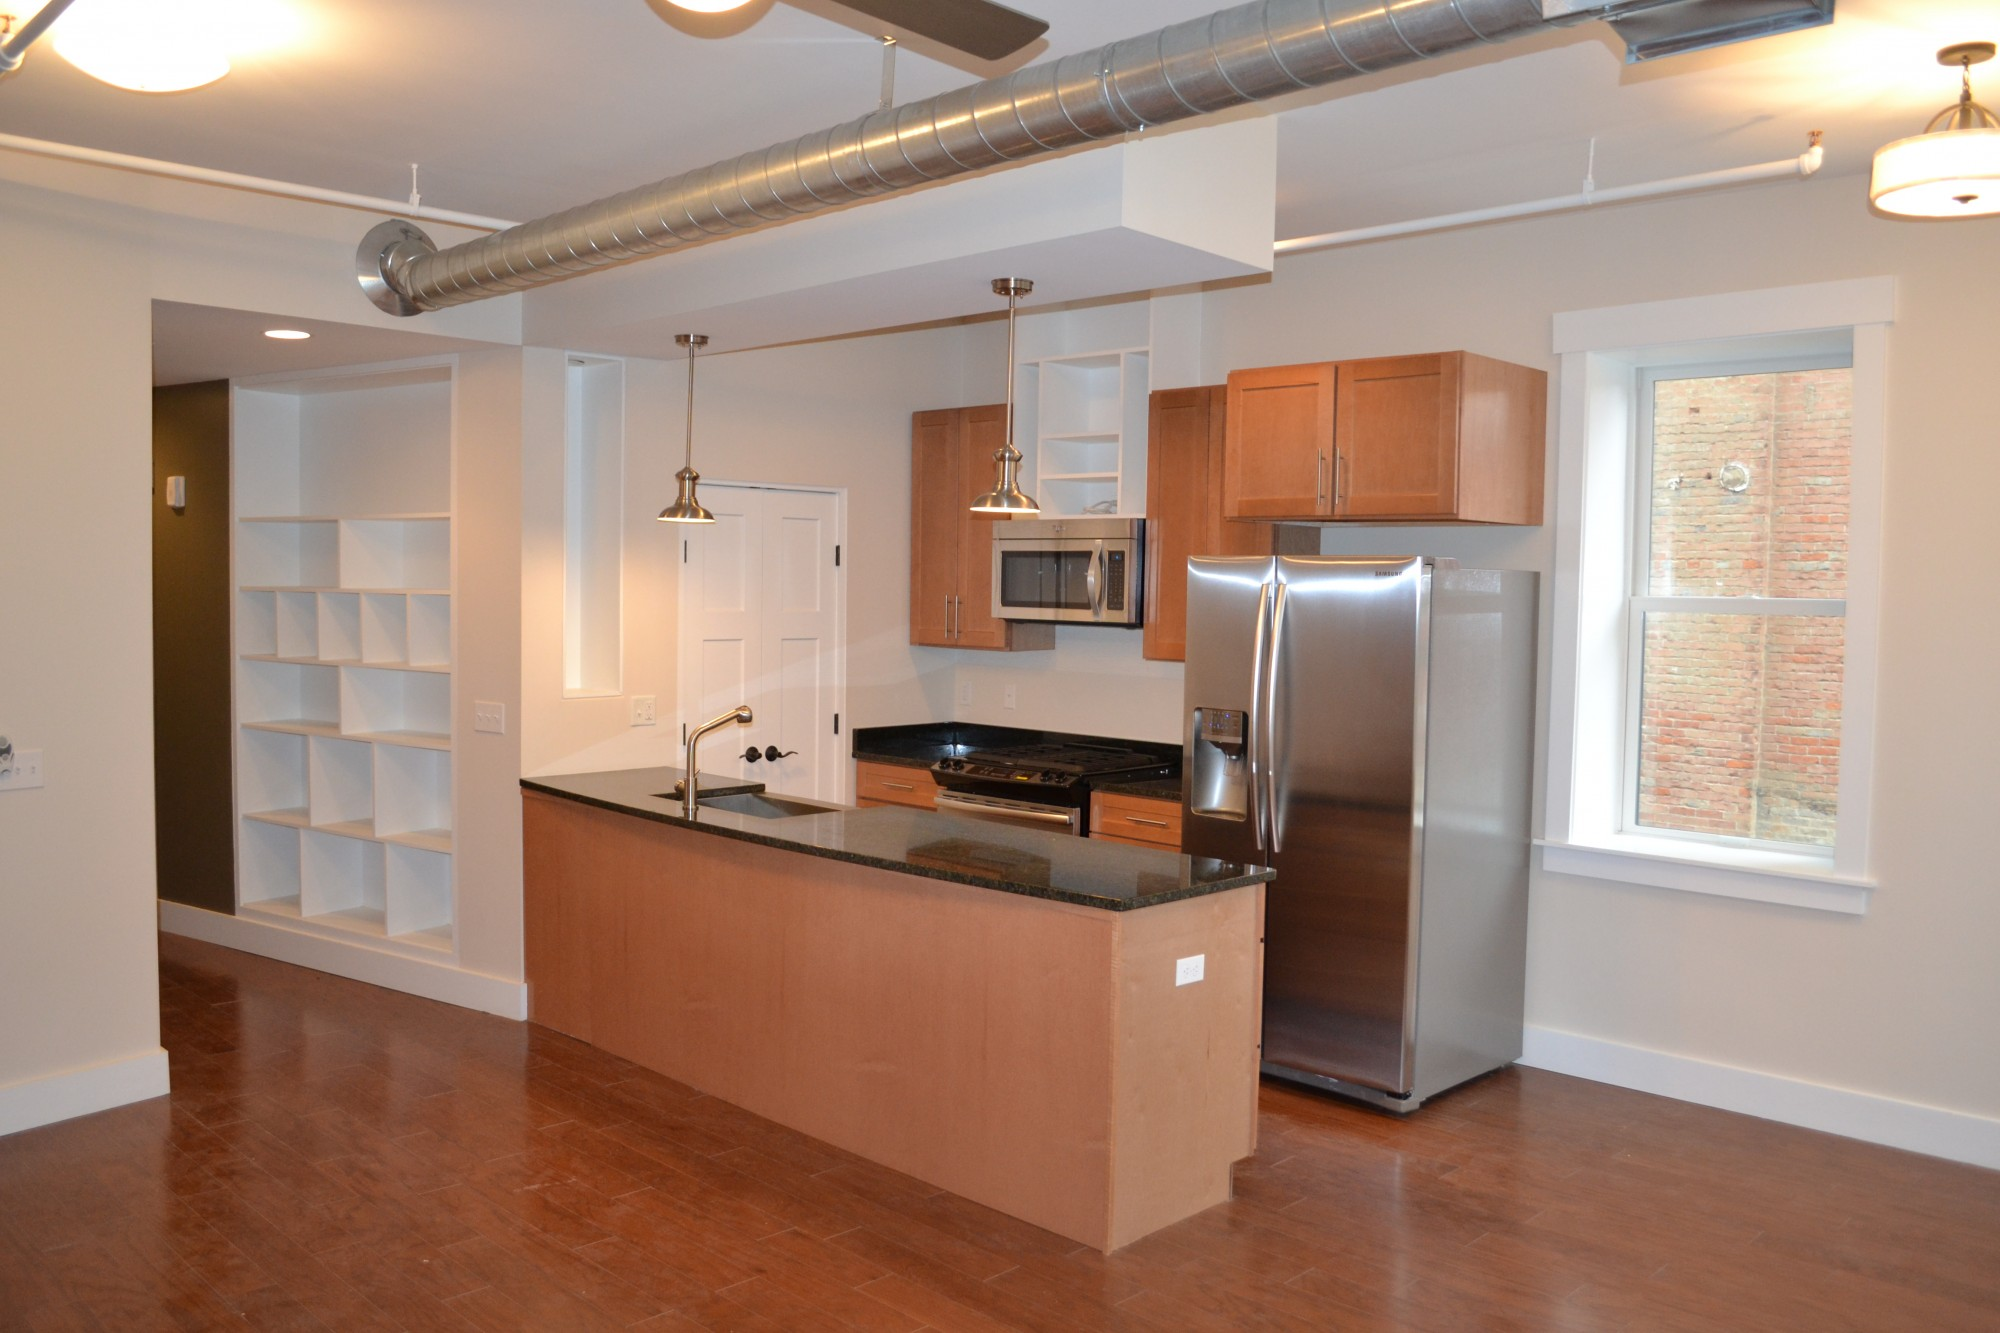 Graybach Bakery Lofts - Kitchen 2